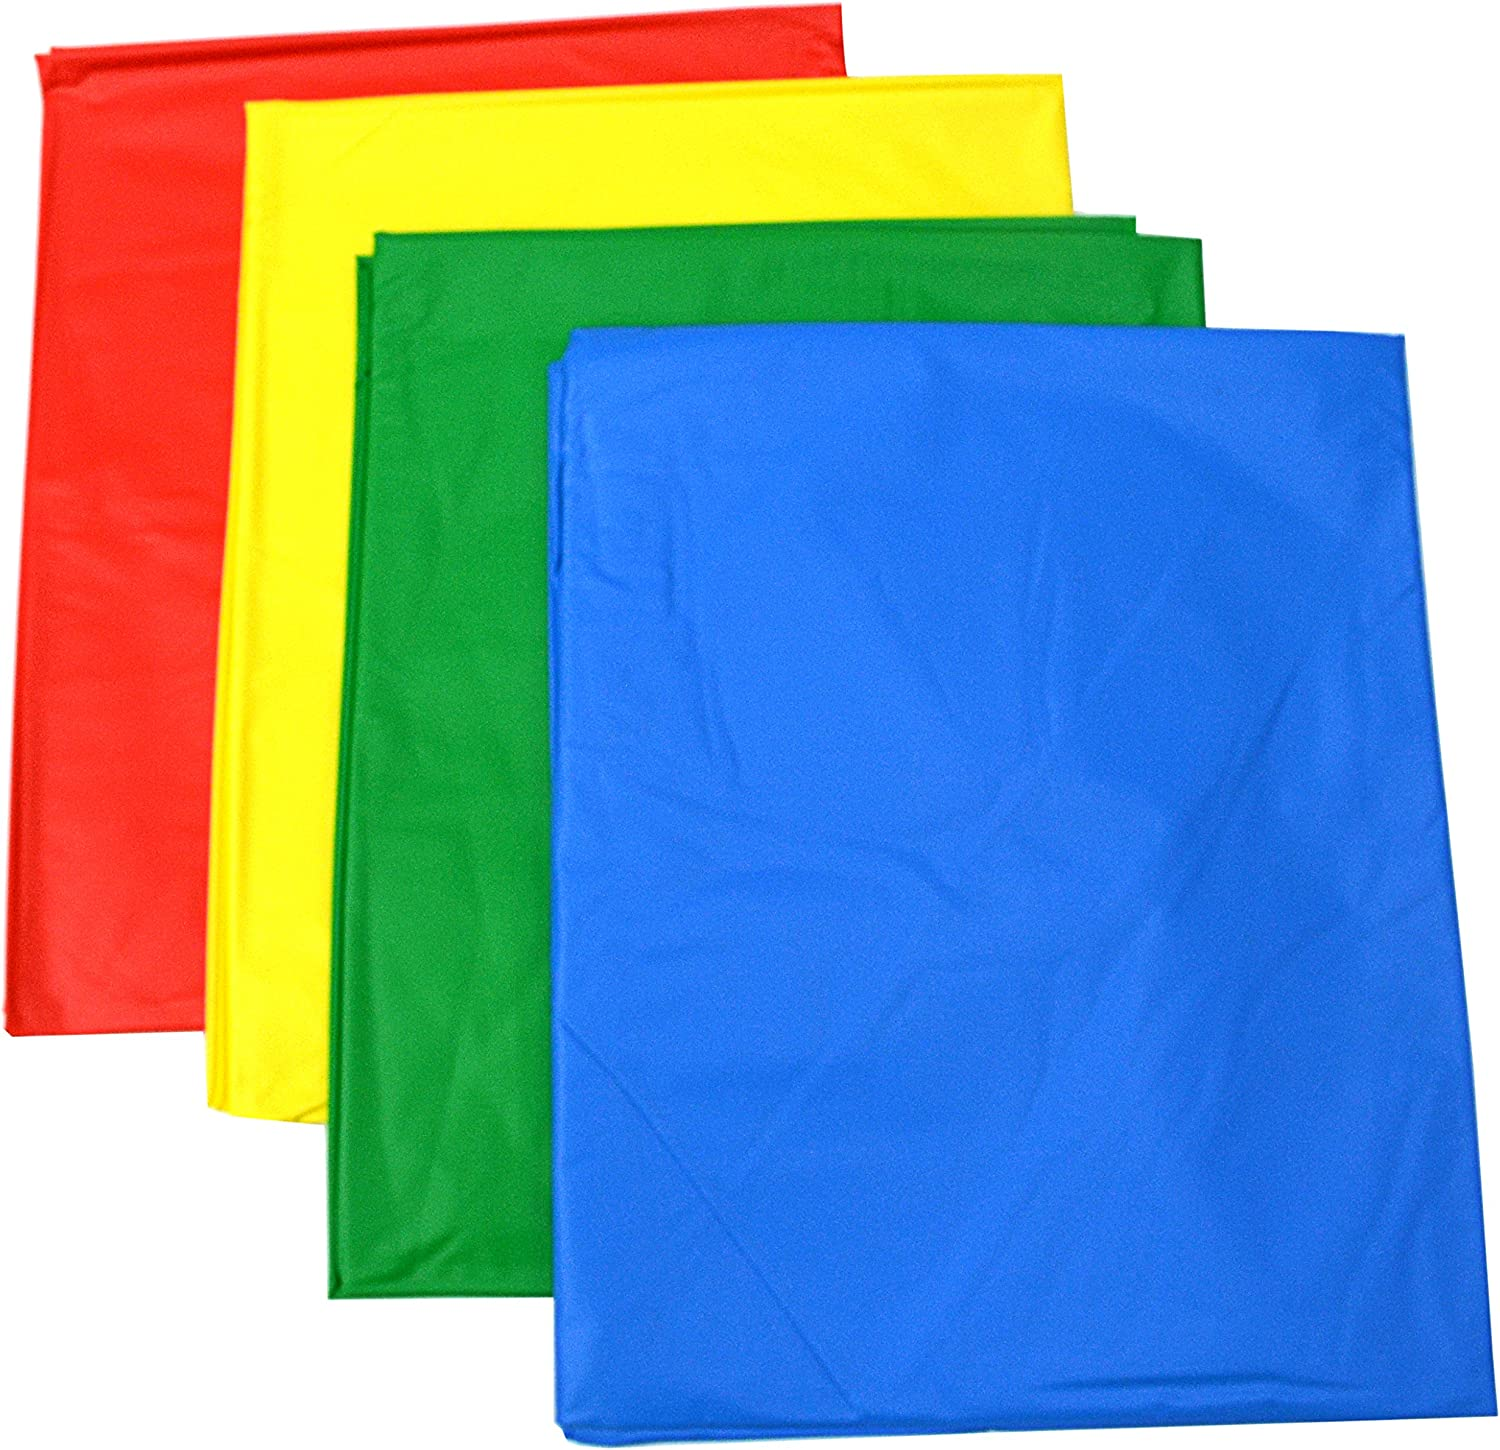 Ideal For Messy Play Pack of 4 Heavy Duty Table//Floor Covers 150cm x 150cm One of Each Colour